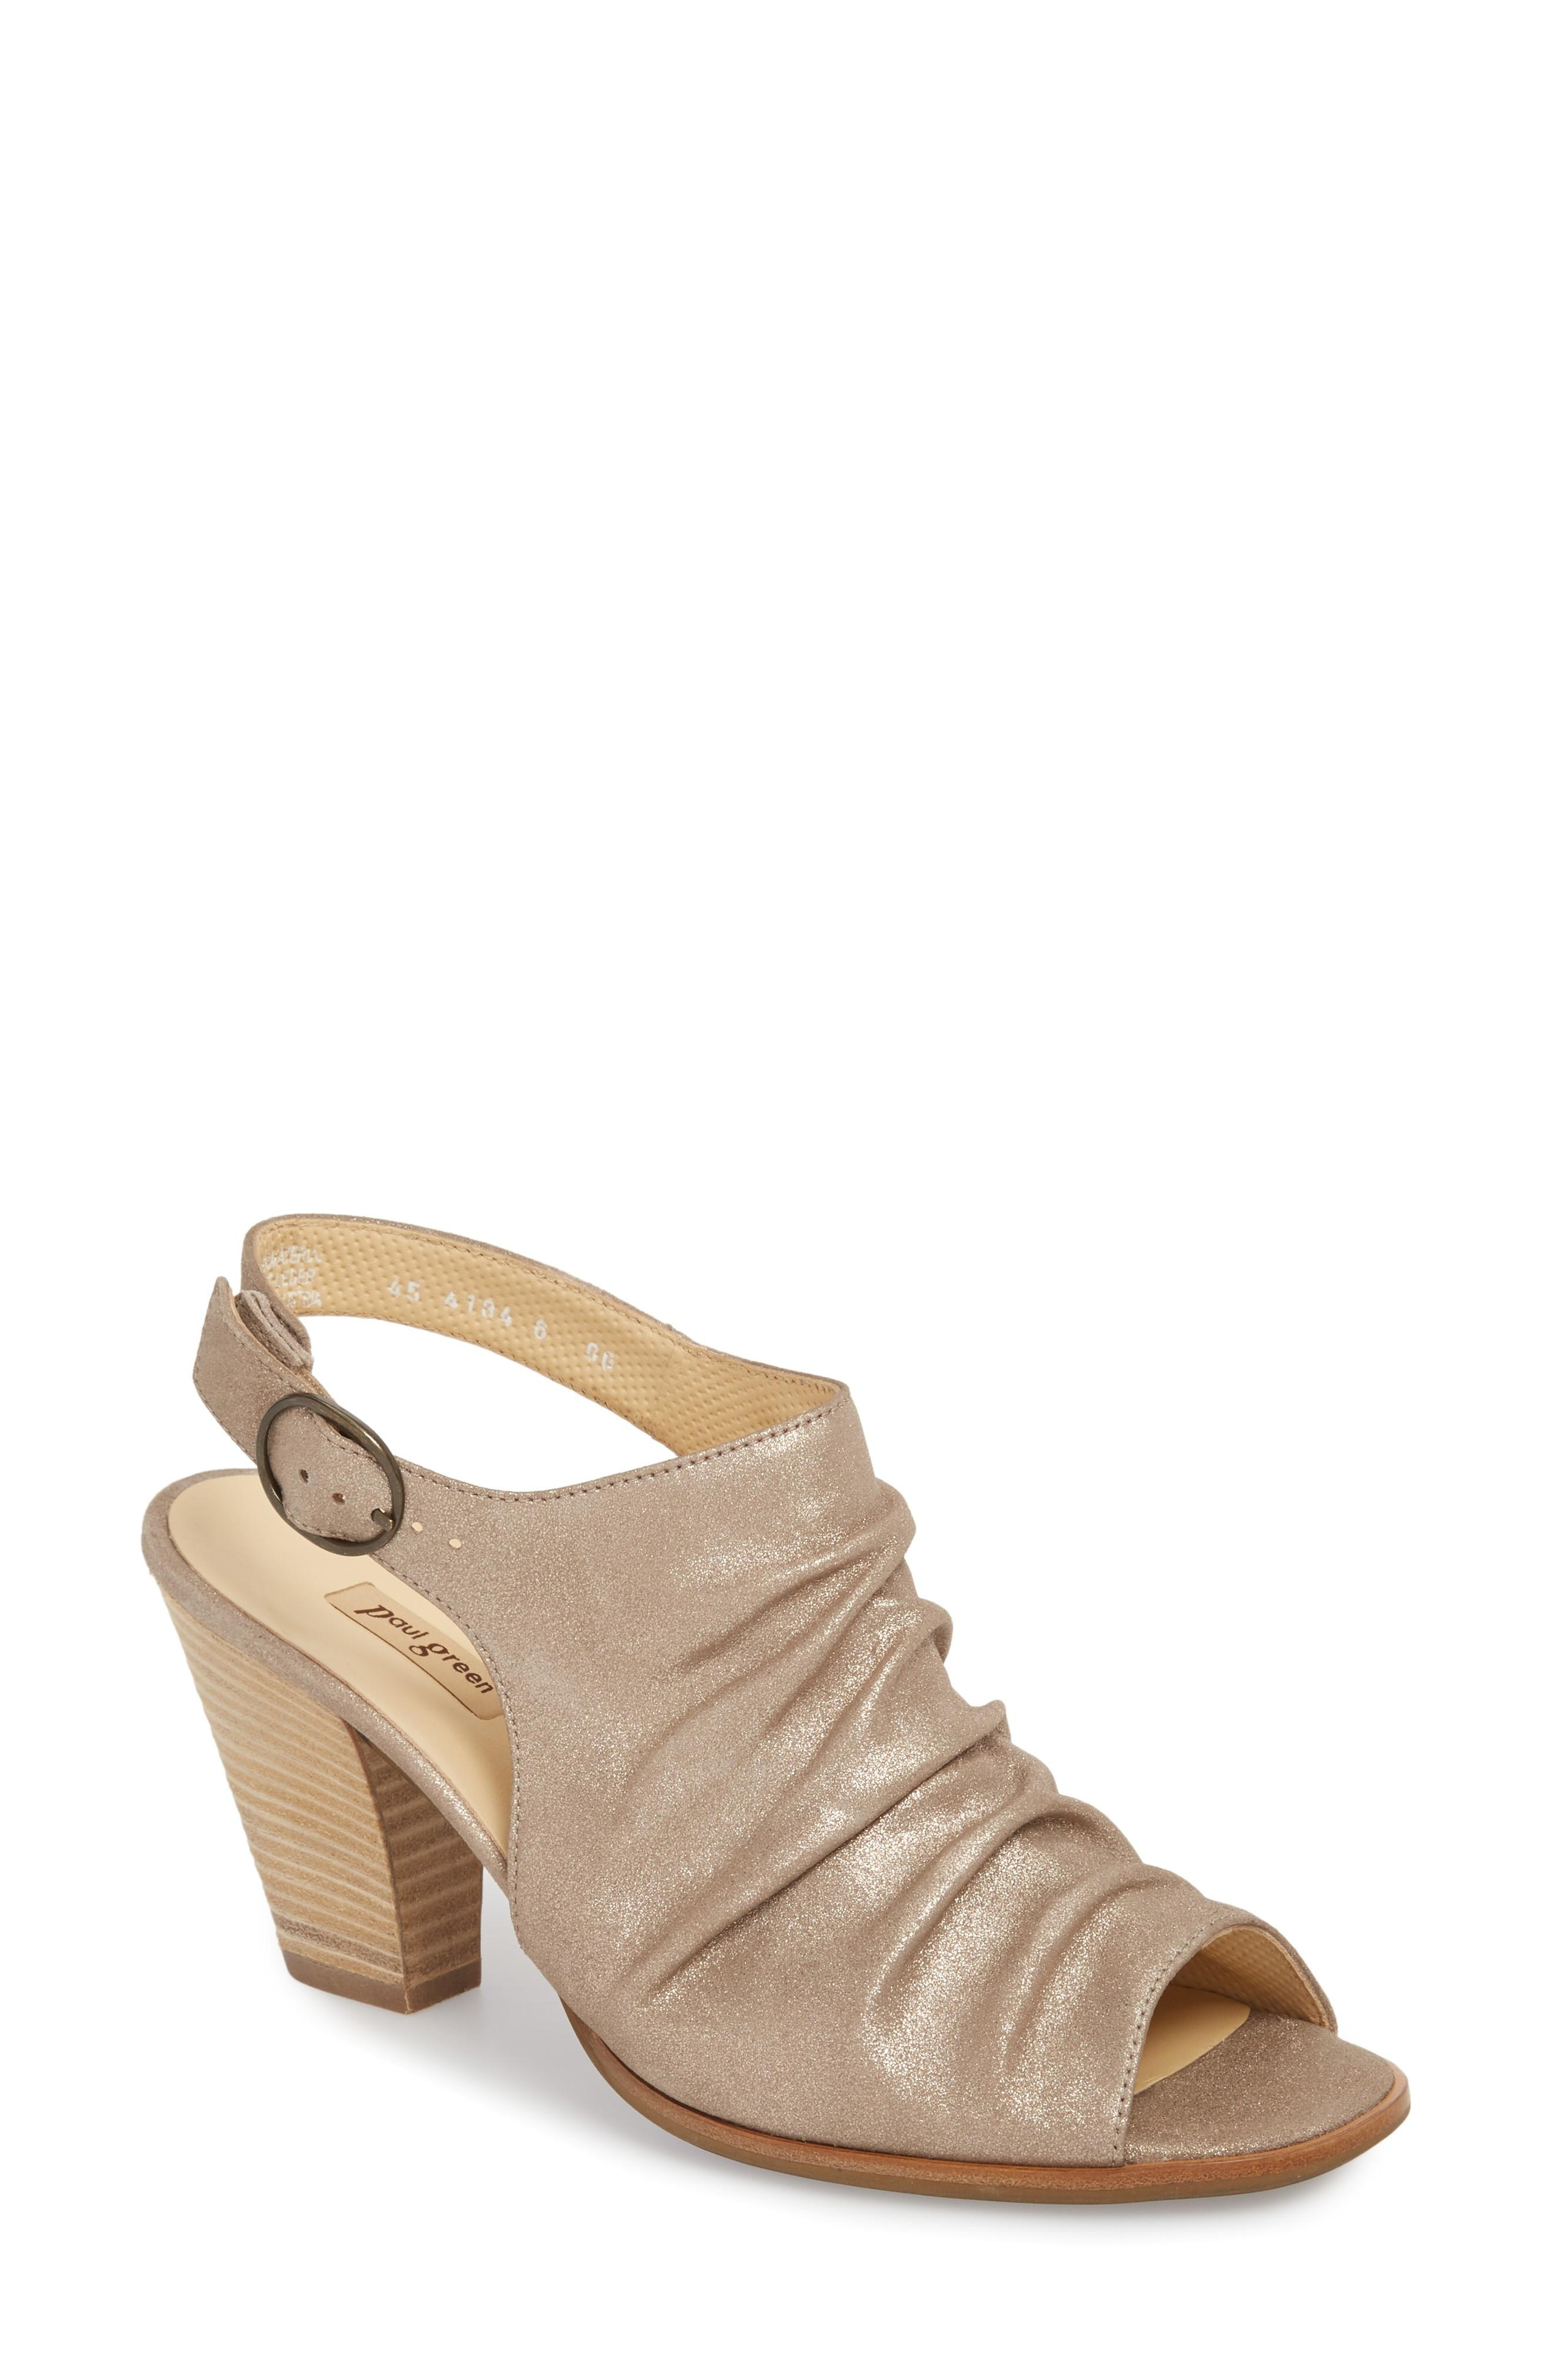 ccd620d2684 Paul Green Rival Sandal In Champagne Nubuck | ModeSens